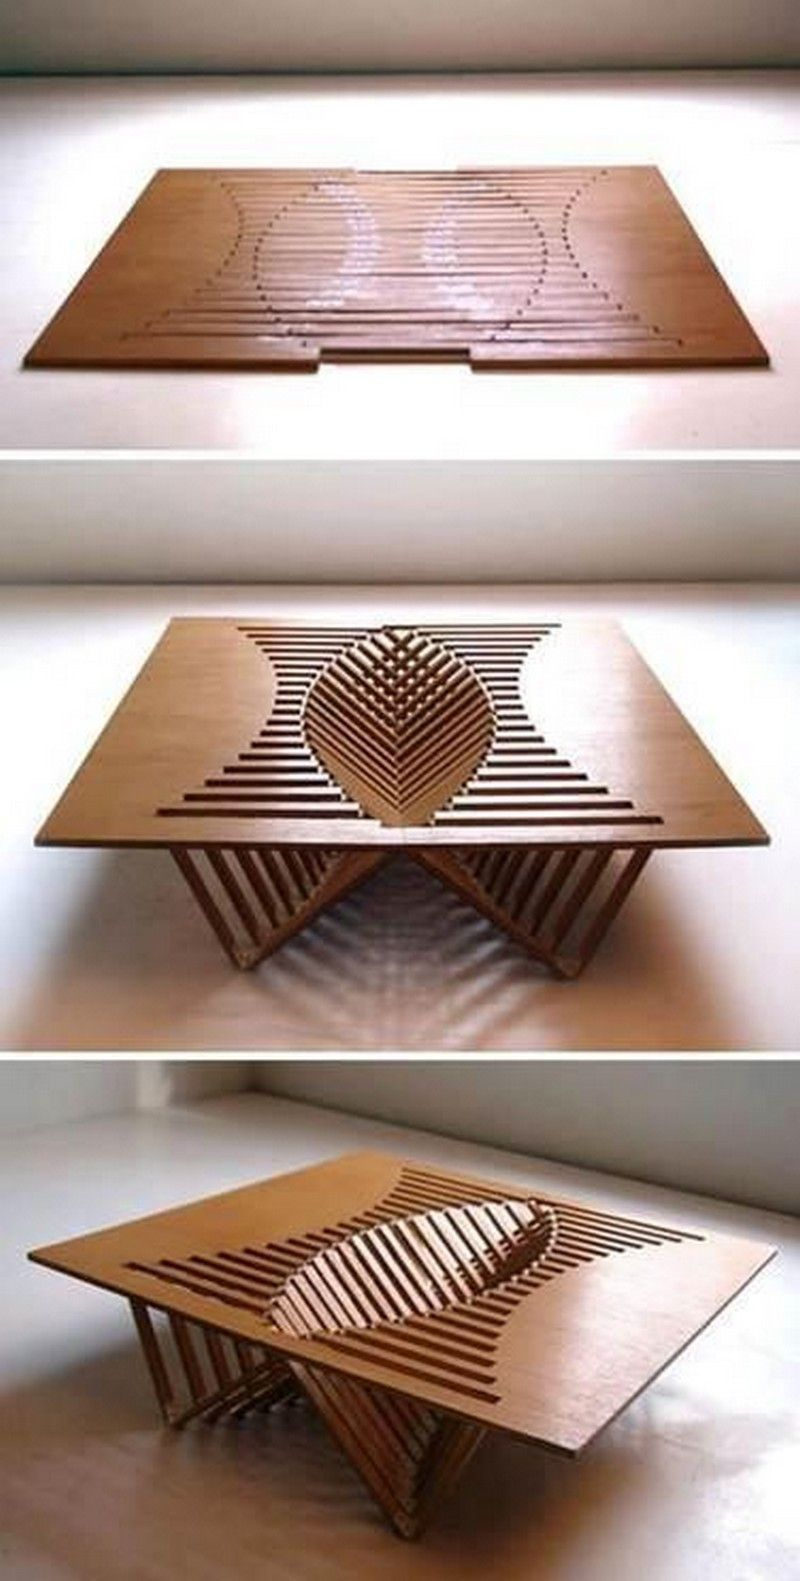 Beautiful Table! flat, easy to store. Just pull up to expand into a table.